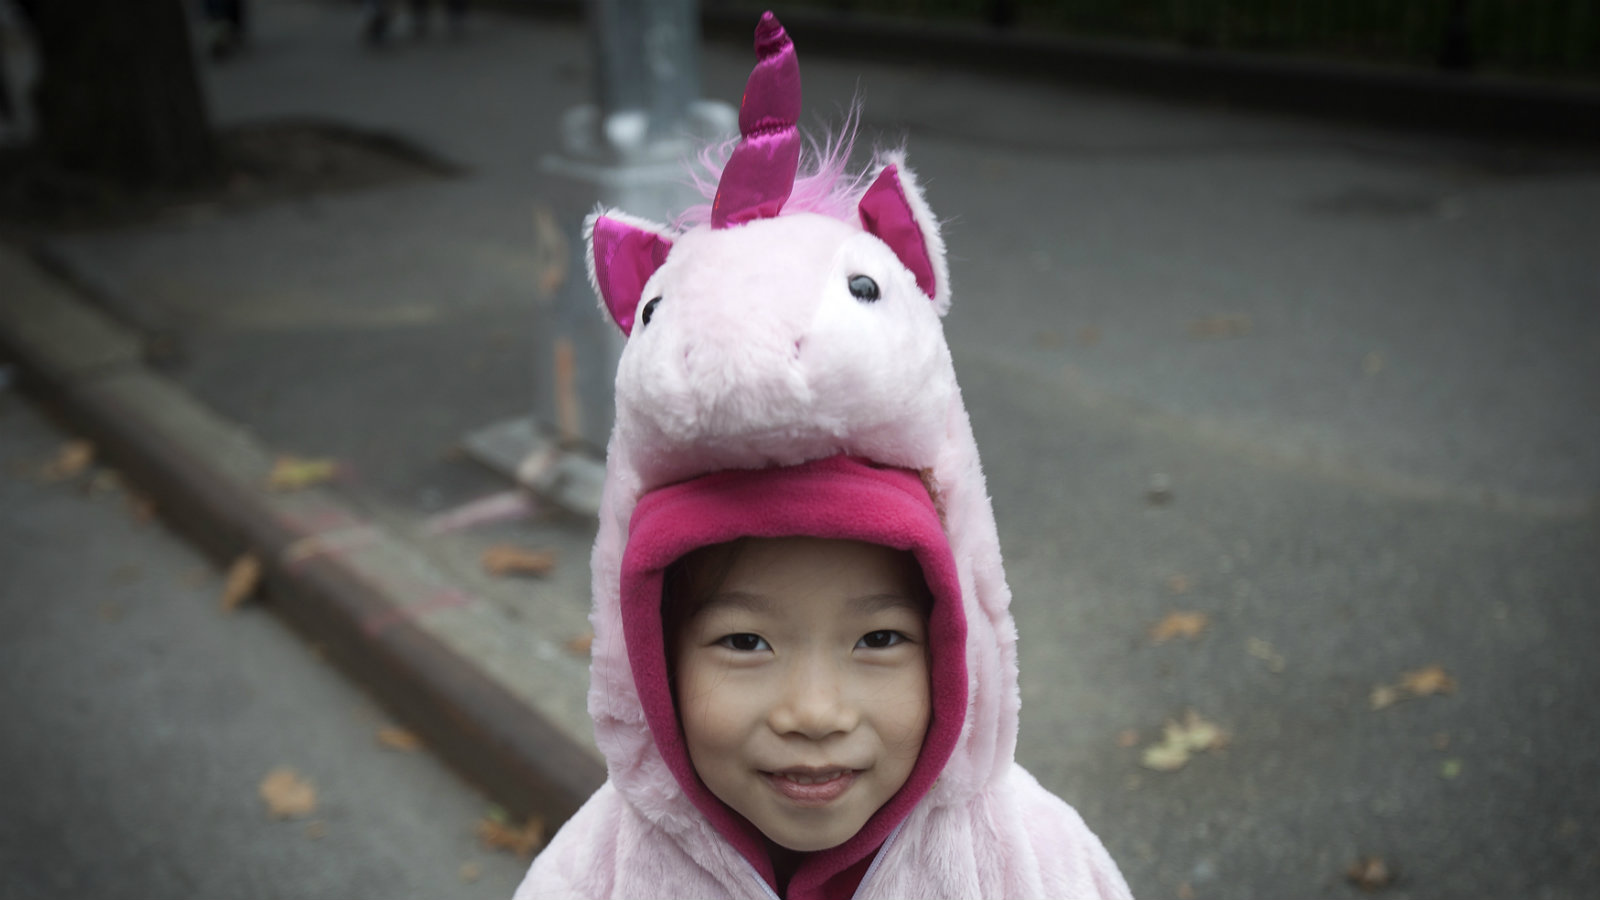 A child in a unicorn costume takes part in the 24th Annual Greenwich Village Children's Halloween Parade in the Manhattan borough of New York October 31, 2014.